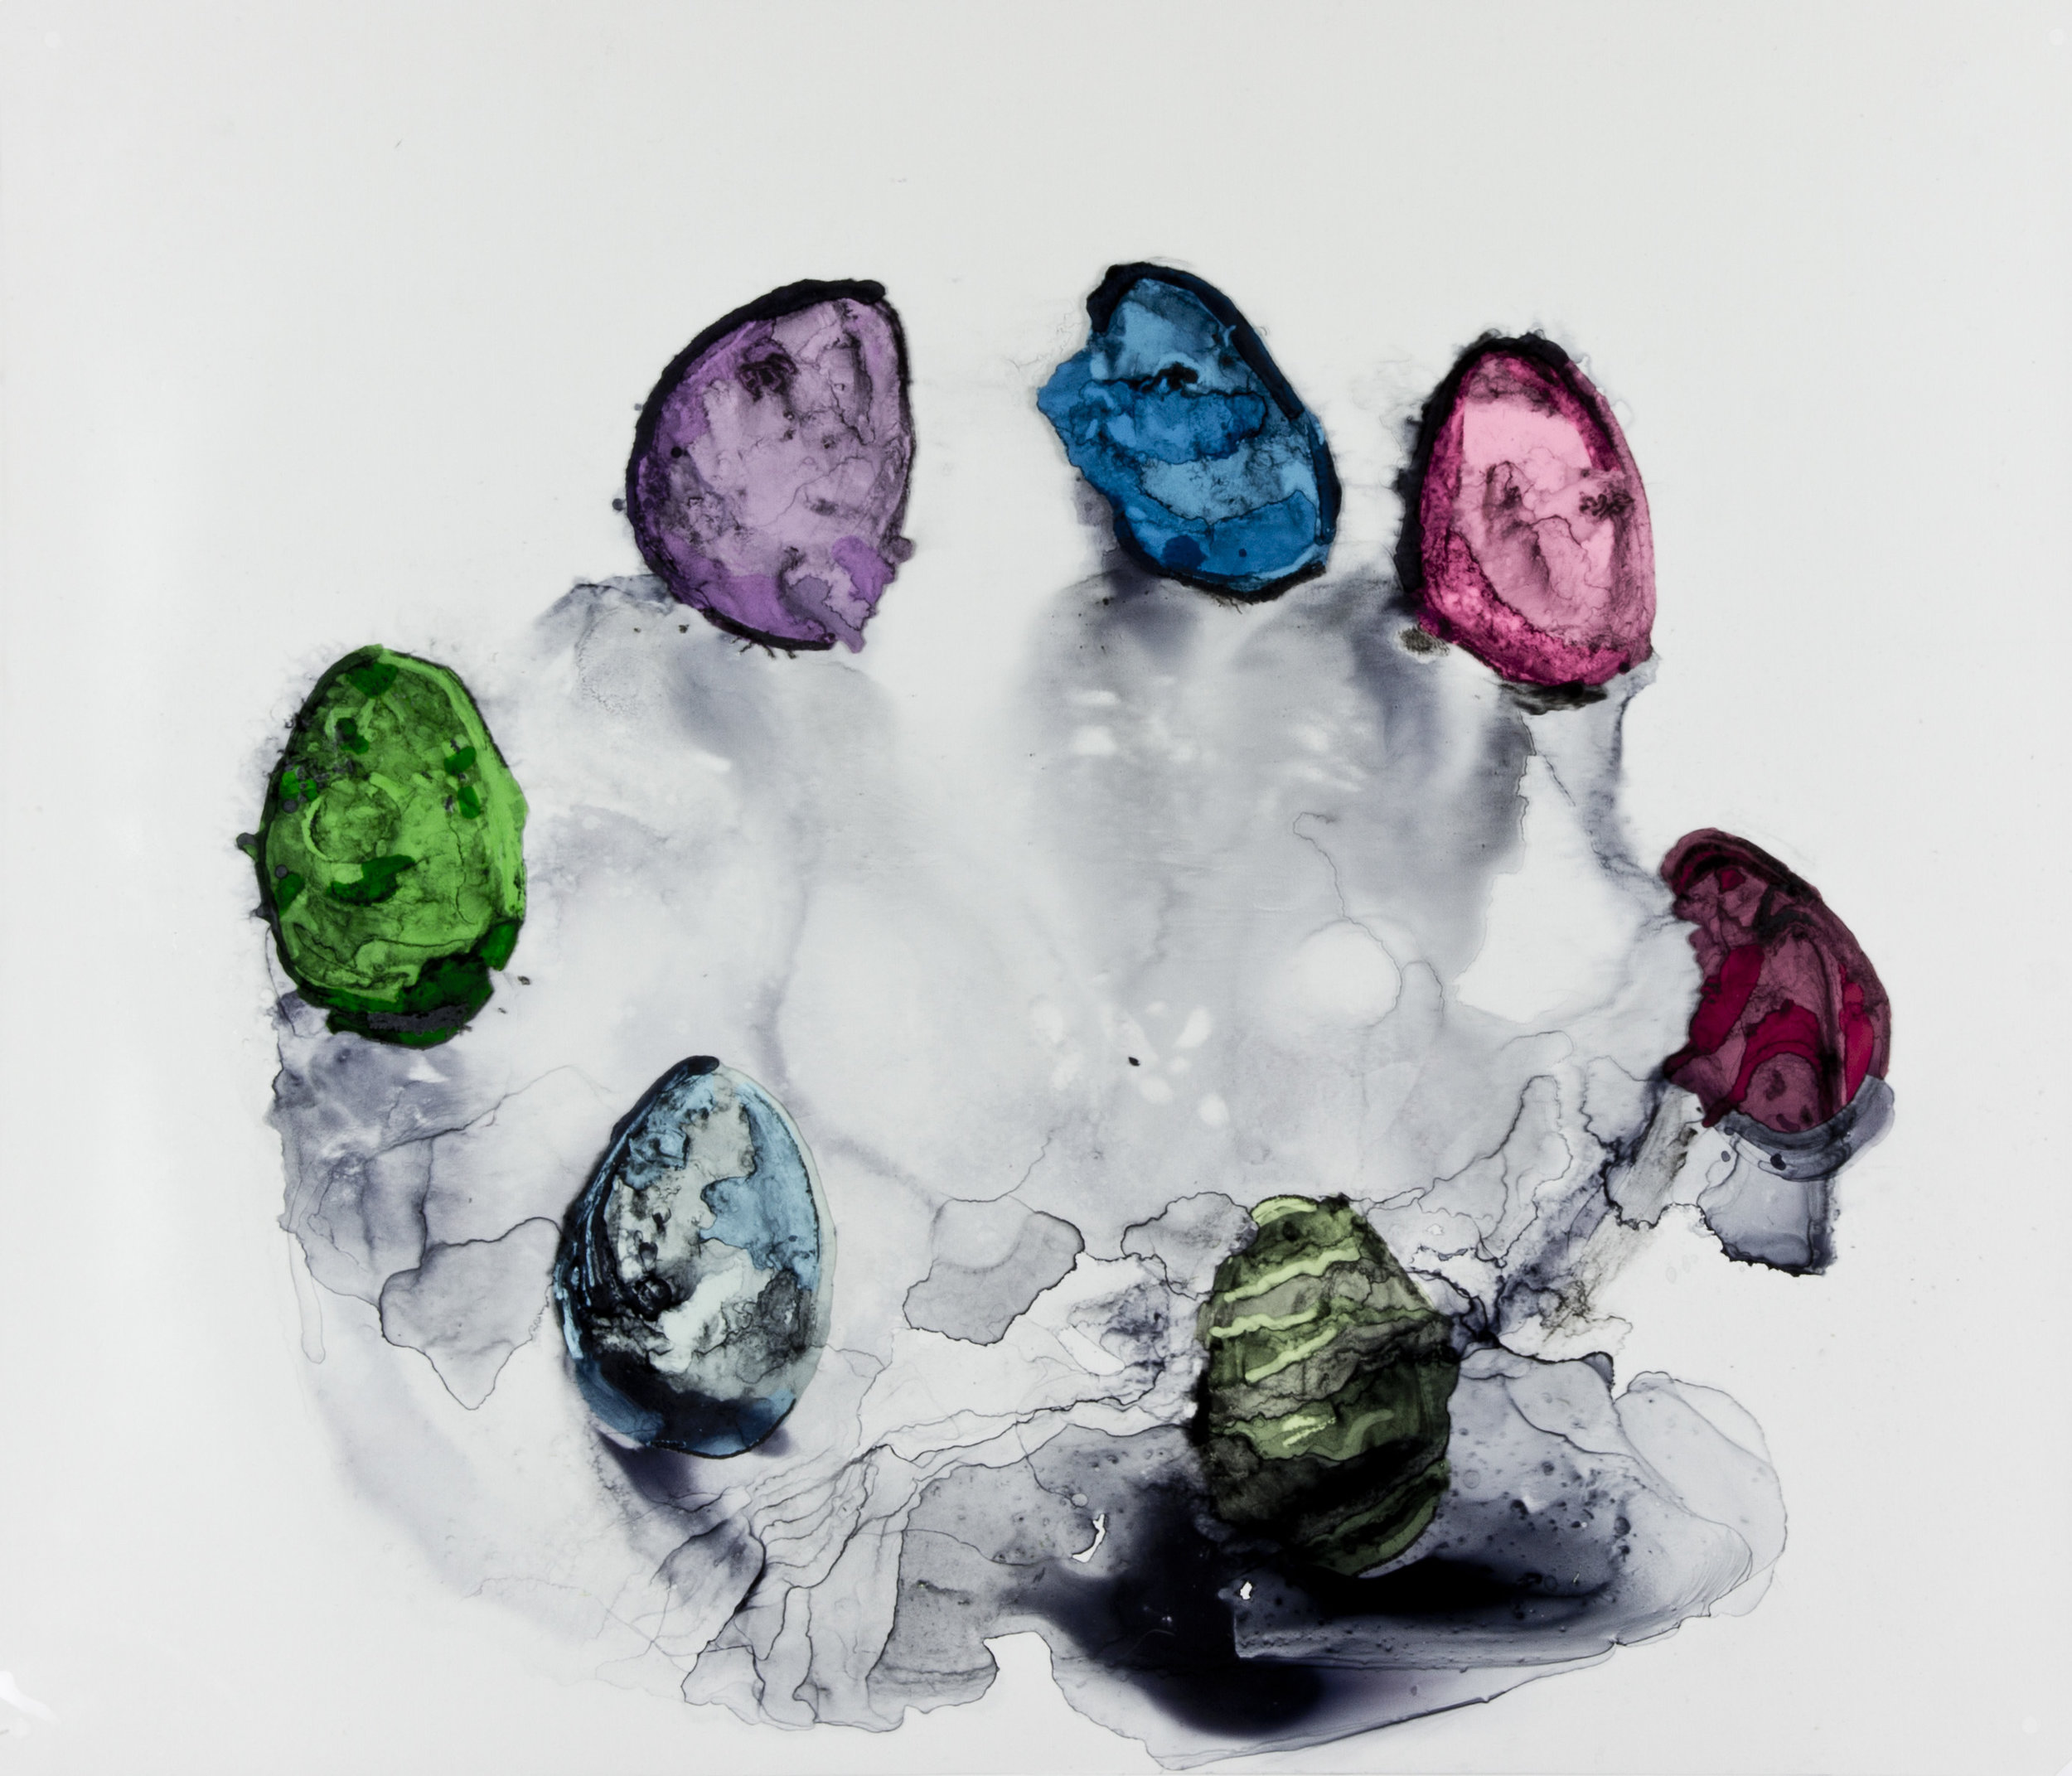 Eggs, 2017, 30x25 inches, Watercolor and acrylic on transparent mylar